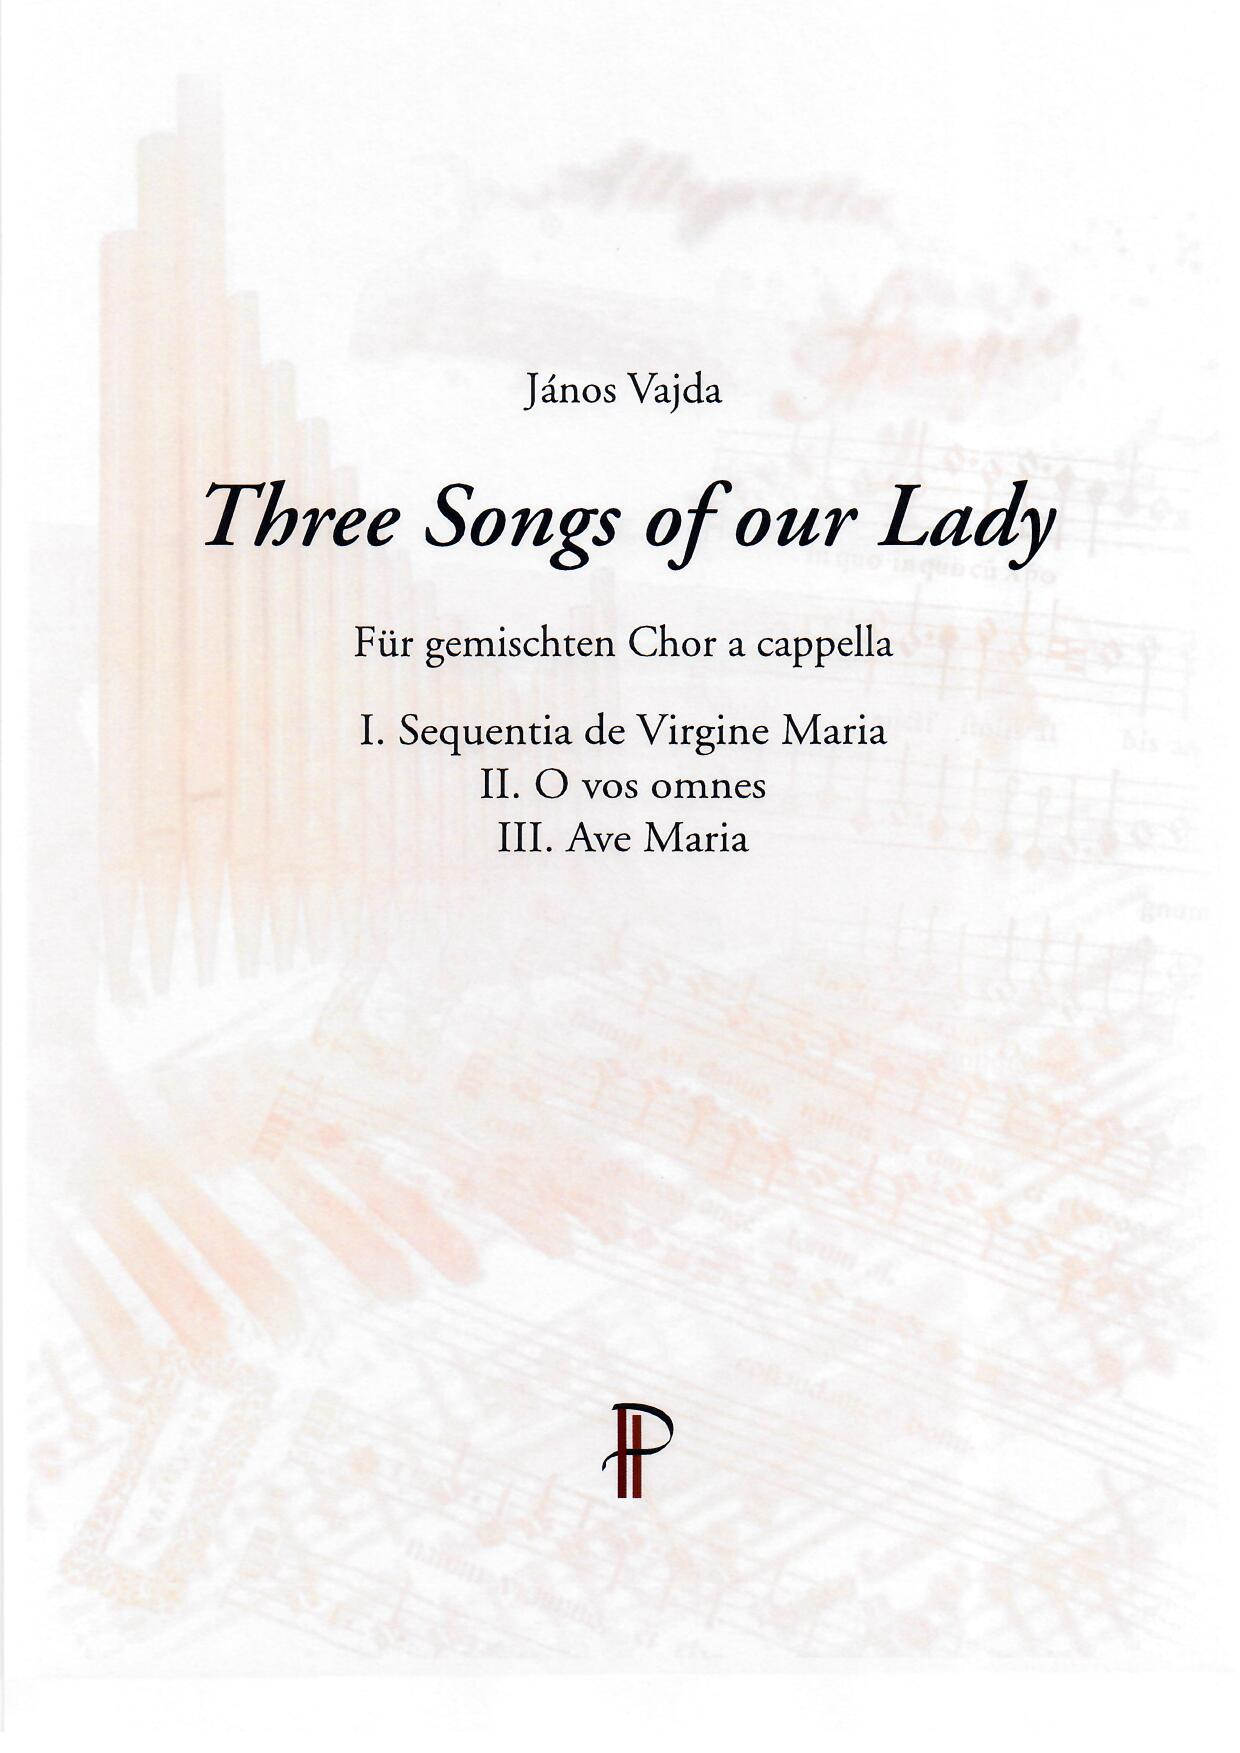 Three Songs of our Lady - Show sample score